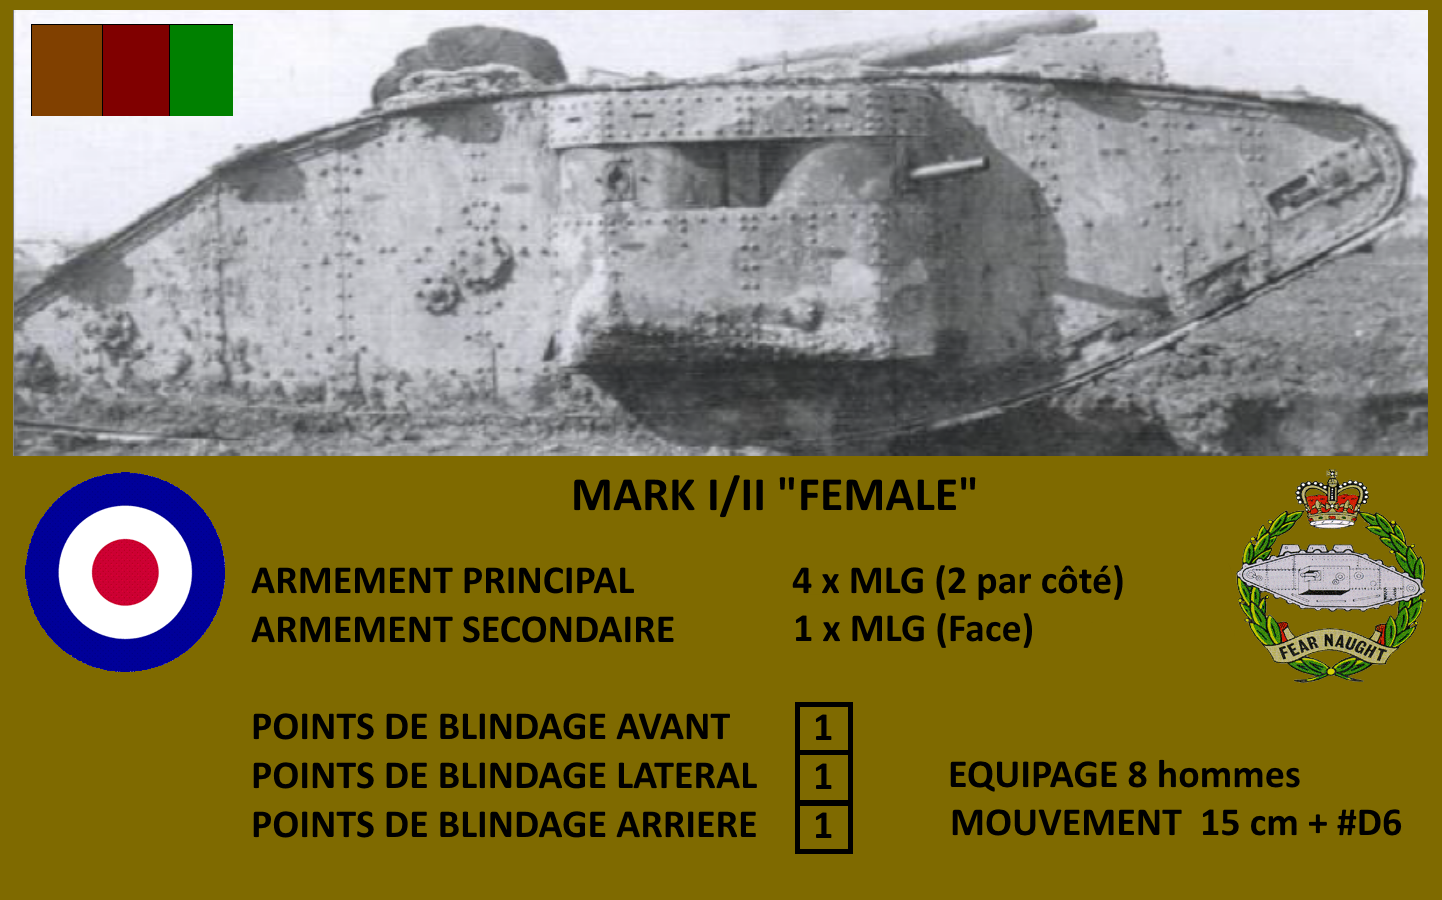 MARK II FEMALE ARRAS 1917